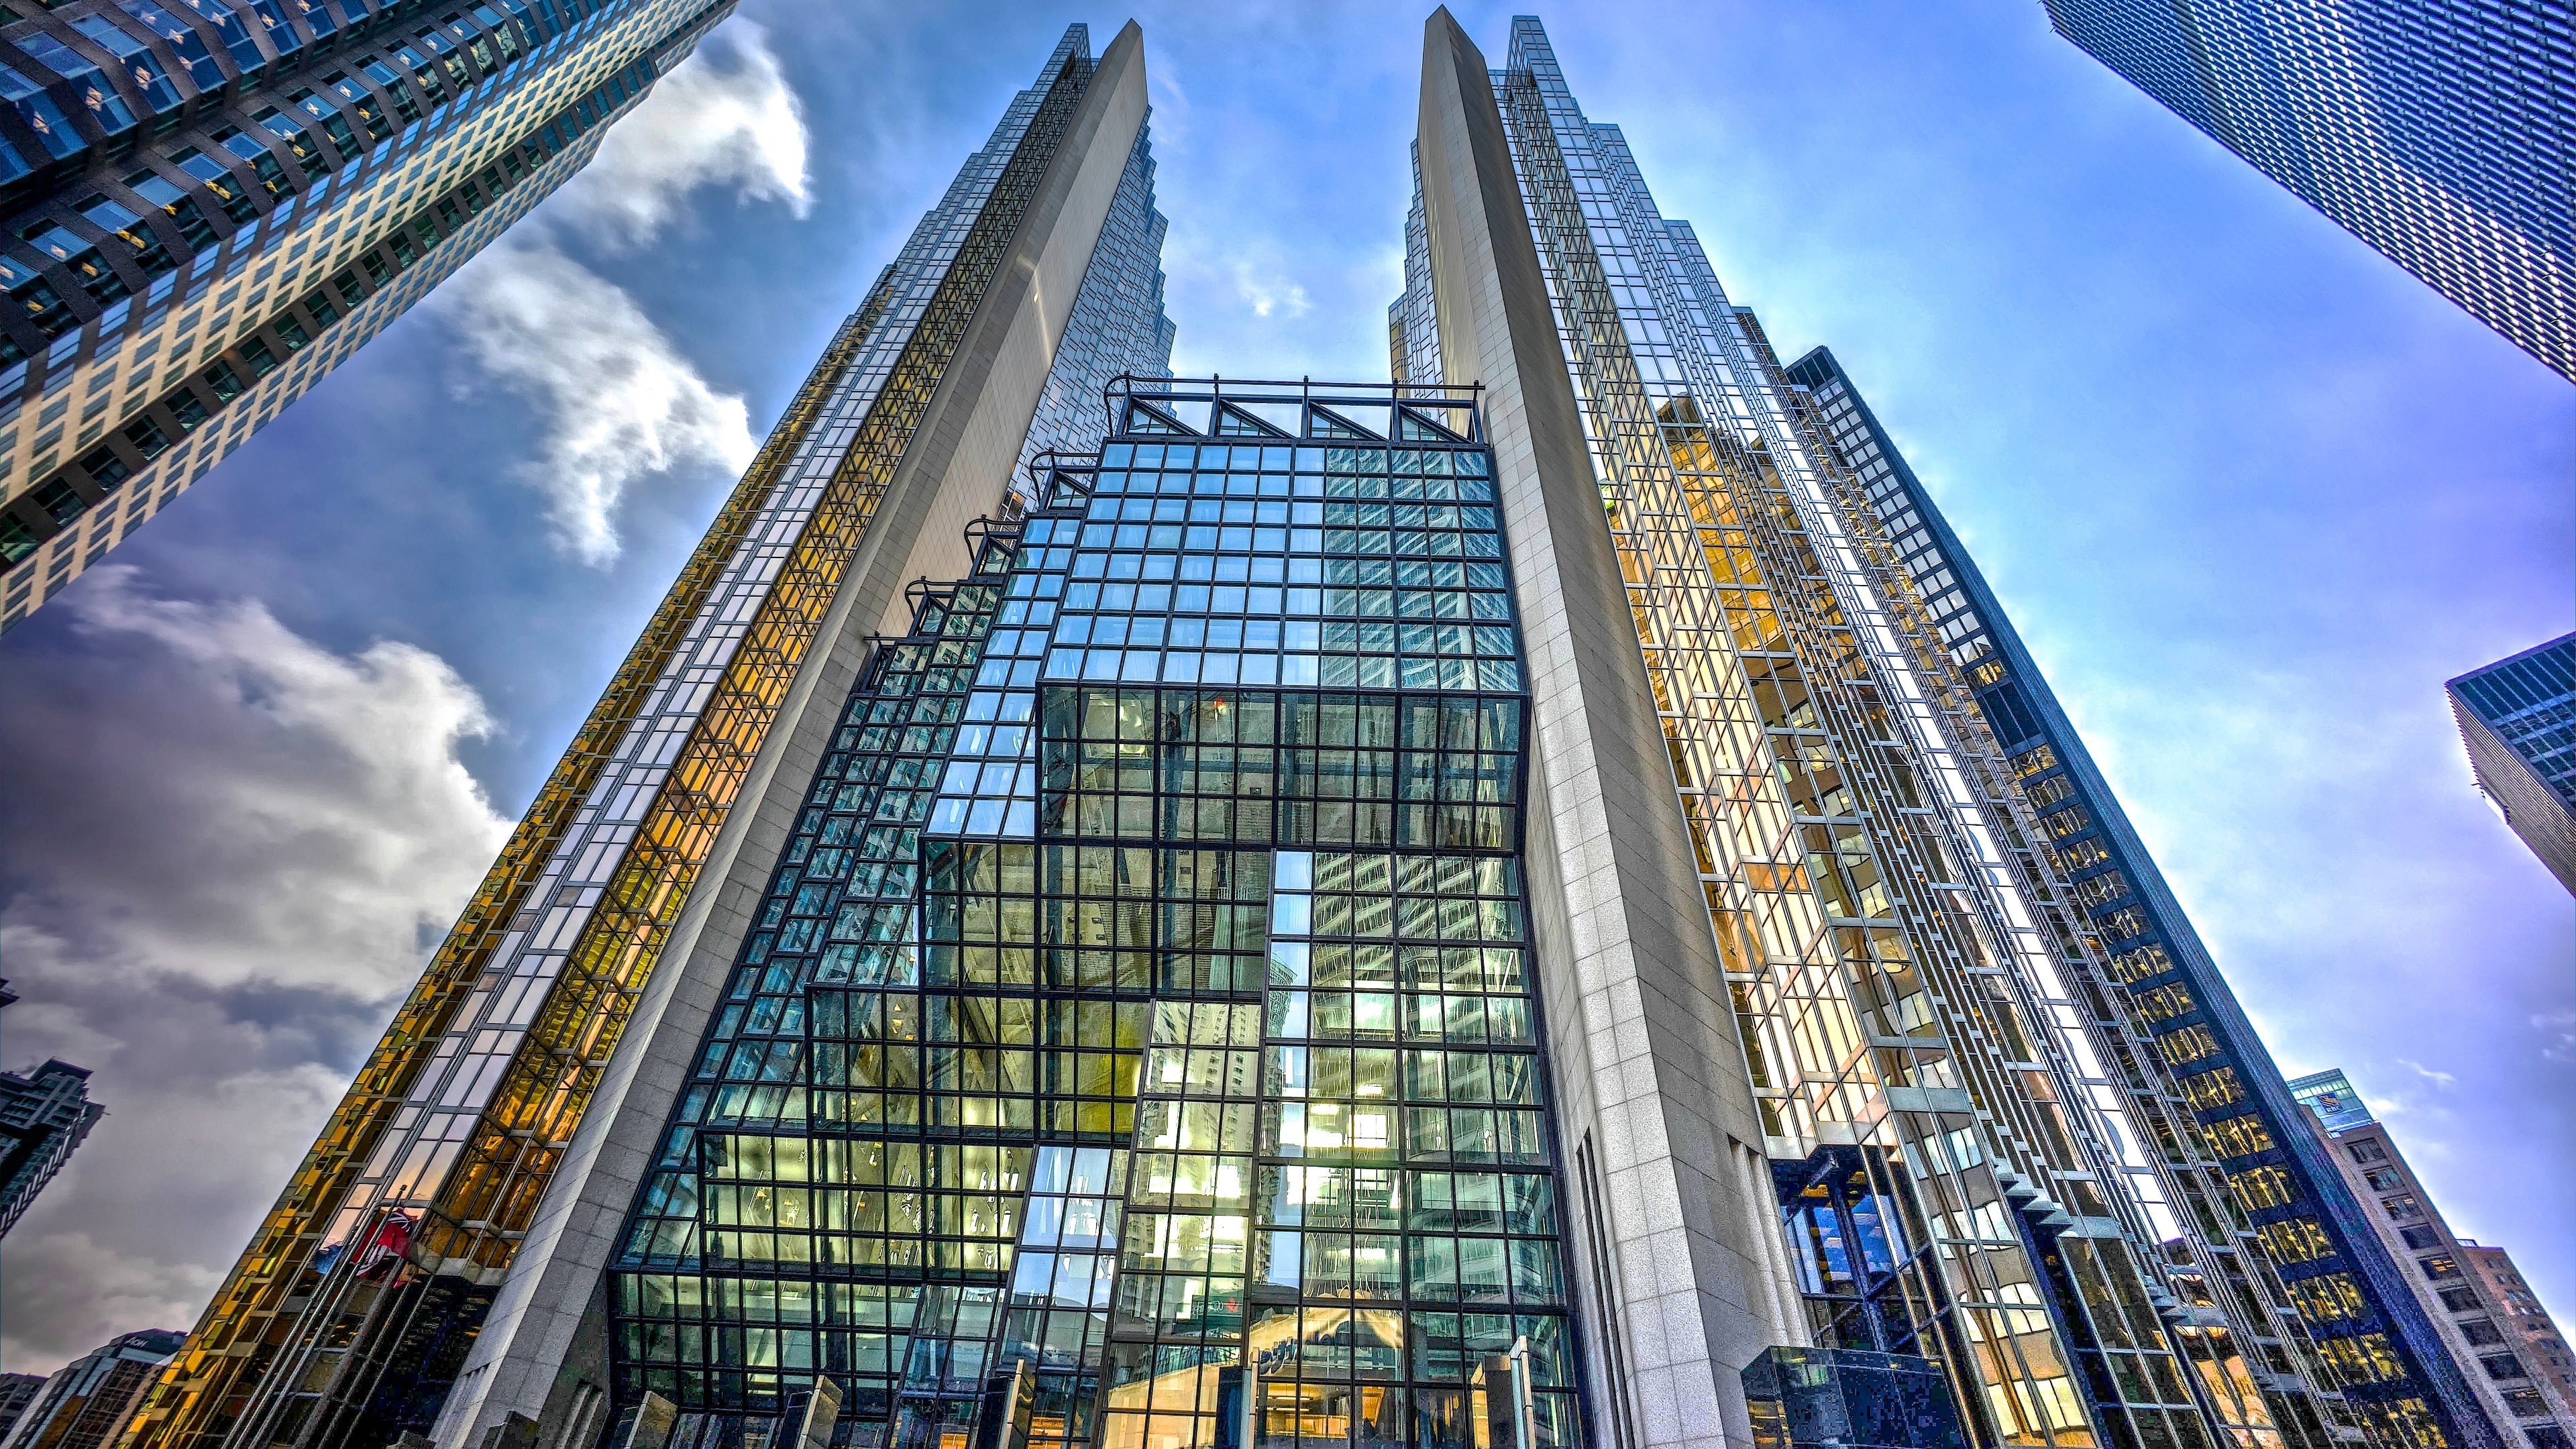 Glass Architecture Wallpapers &183 4K HD Desktop Backgrounds Phone